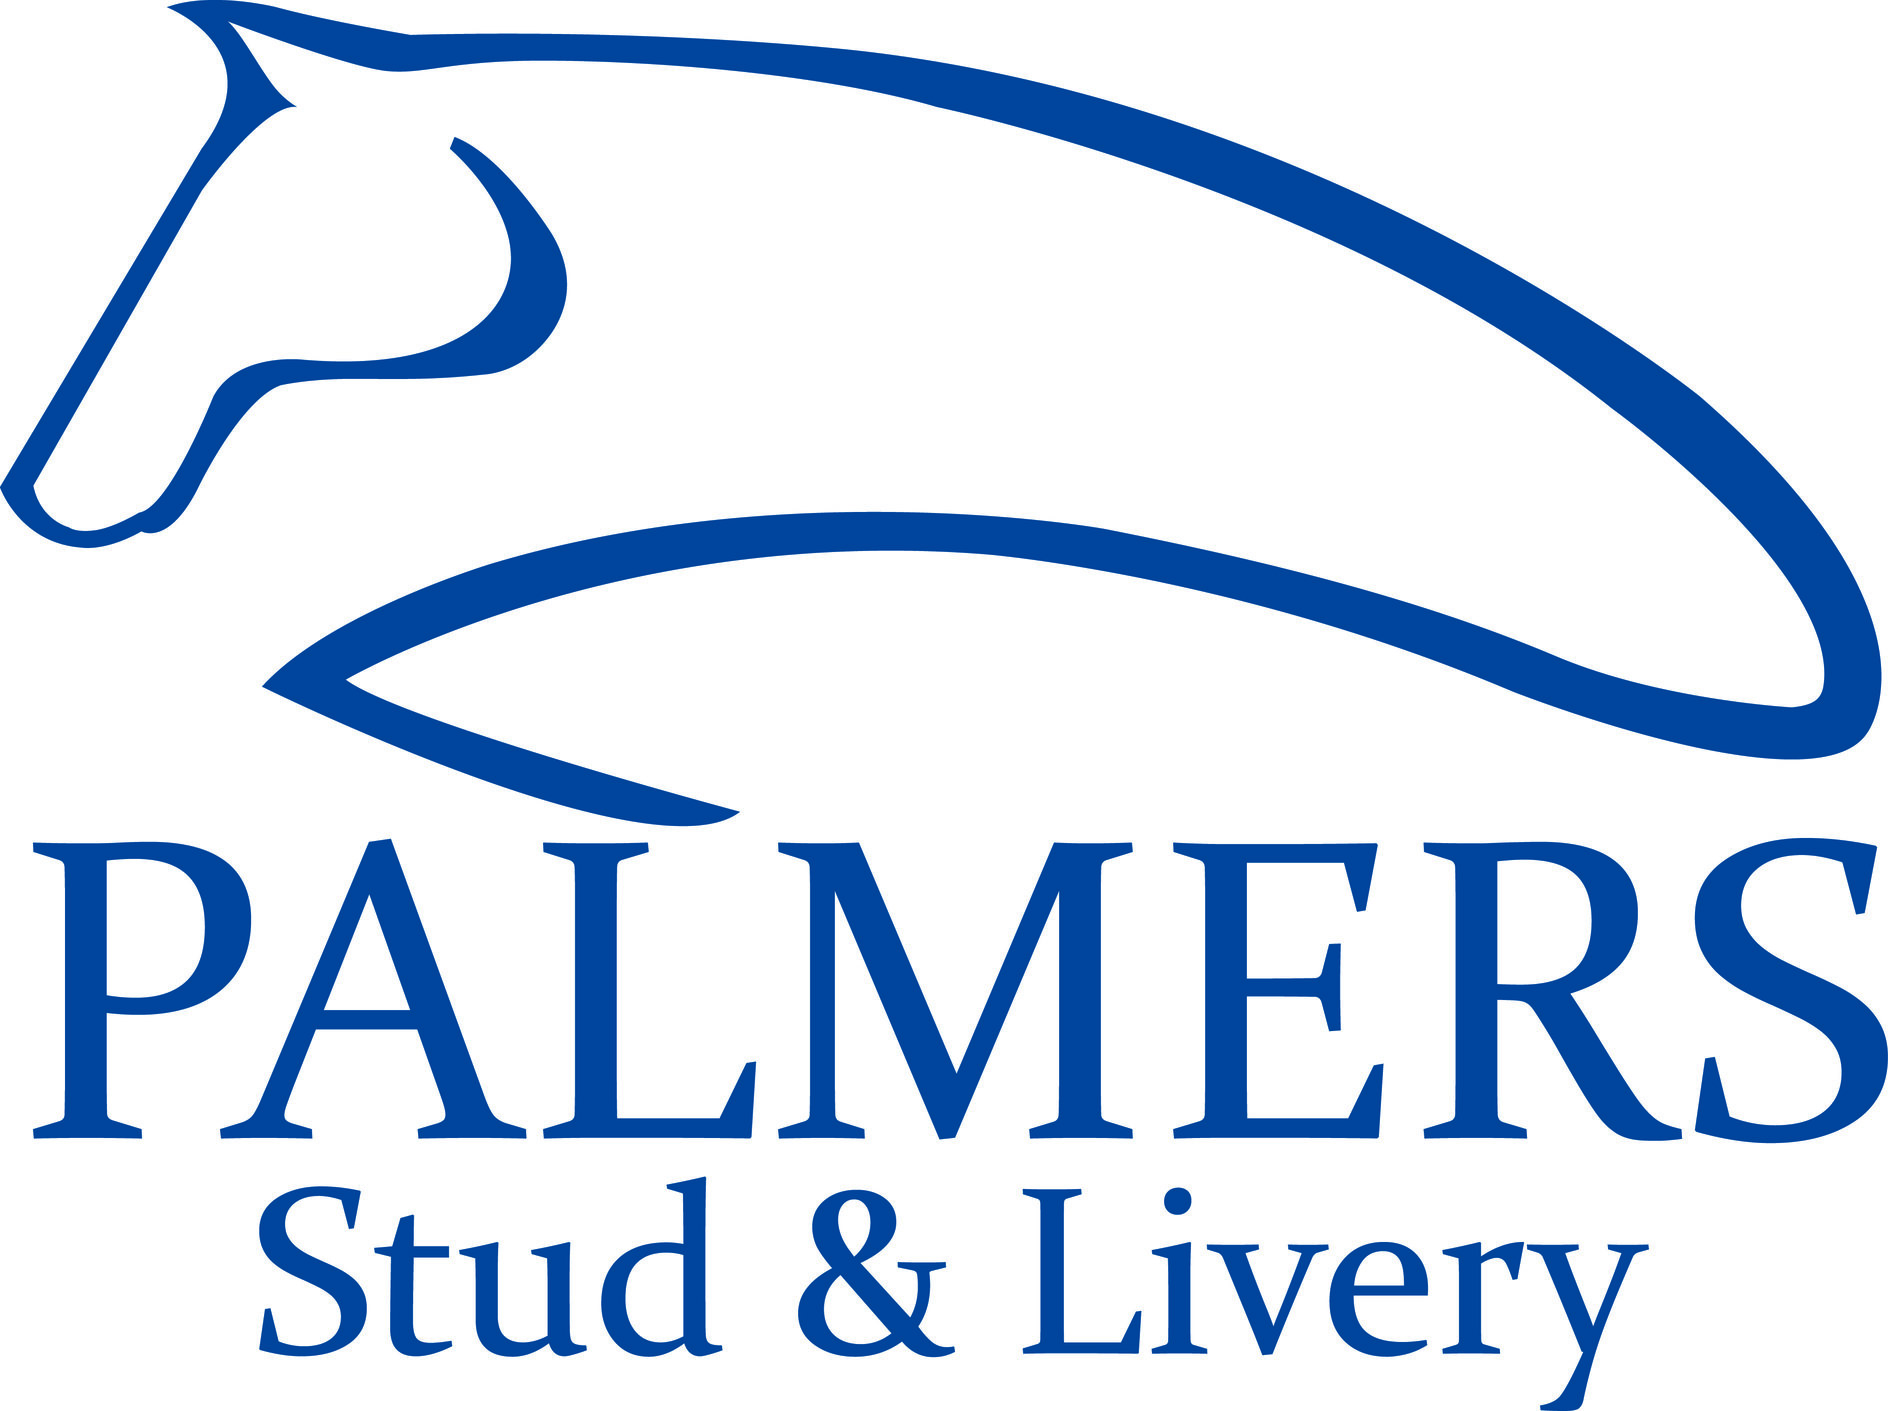 Palmers Stud & Livery